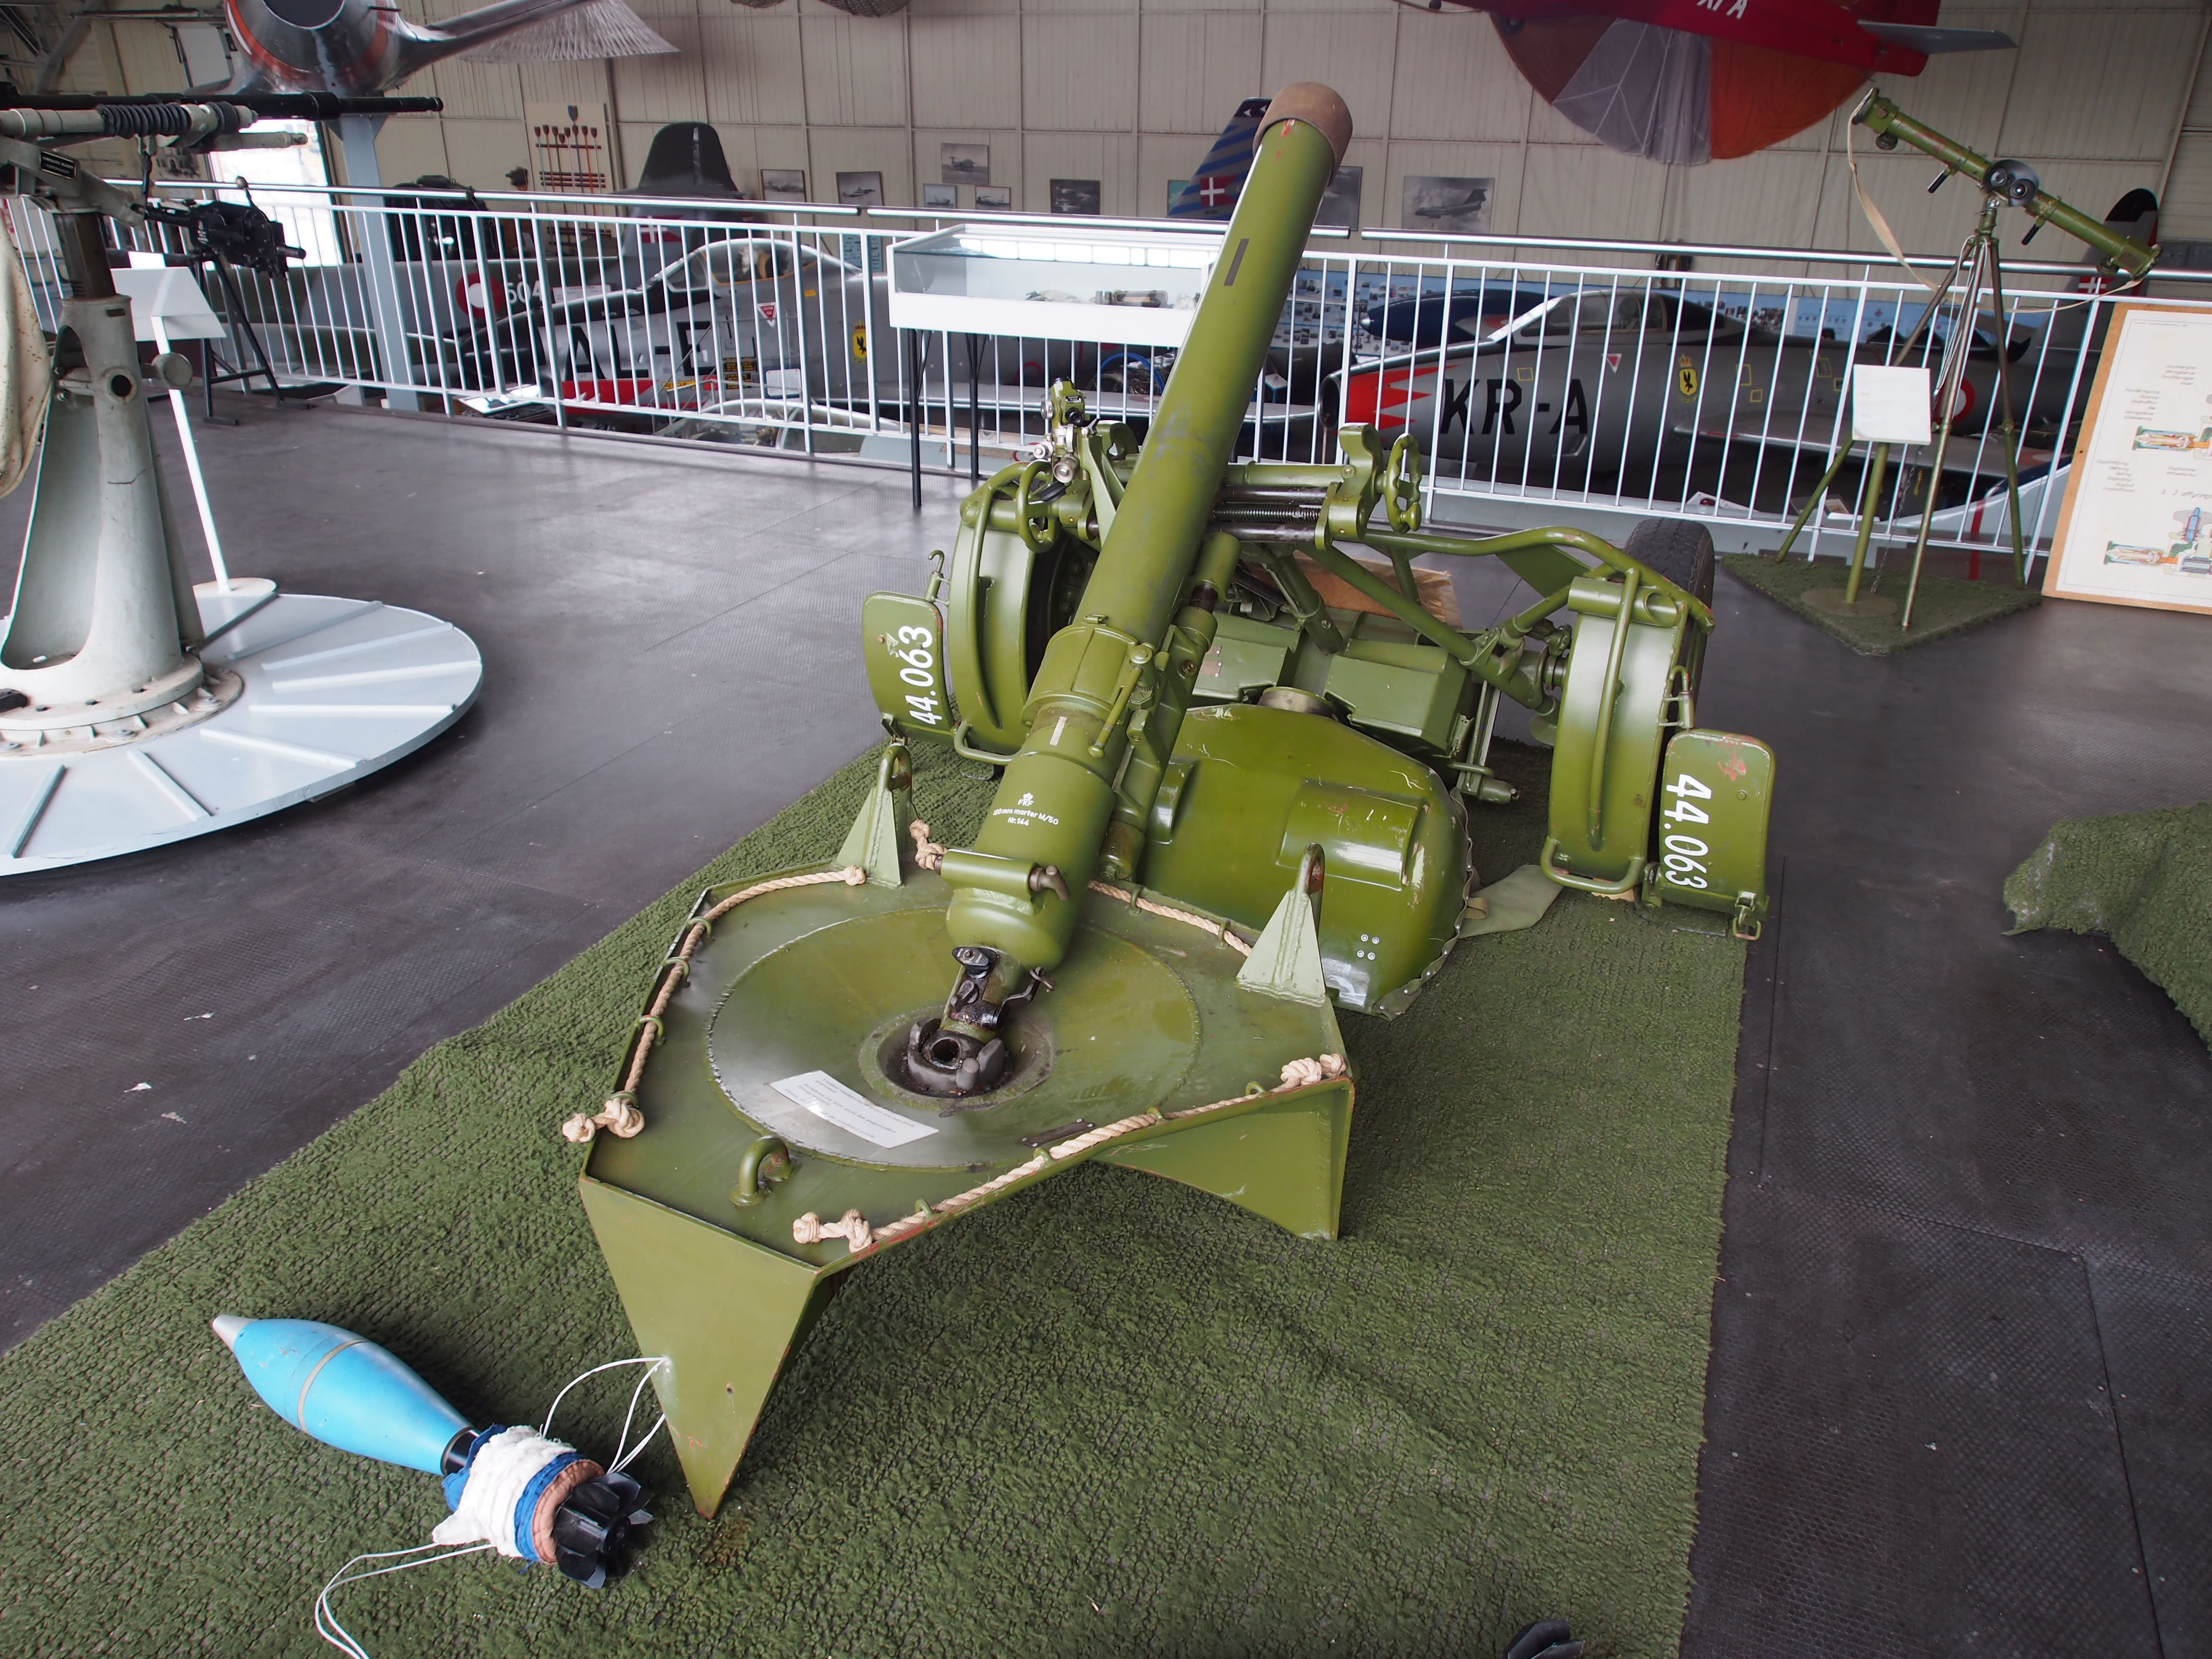 Mortar Fire Control System : Mm mortar system imgkid the image kid has it